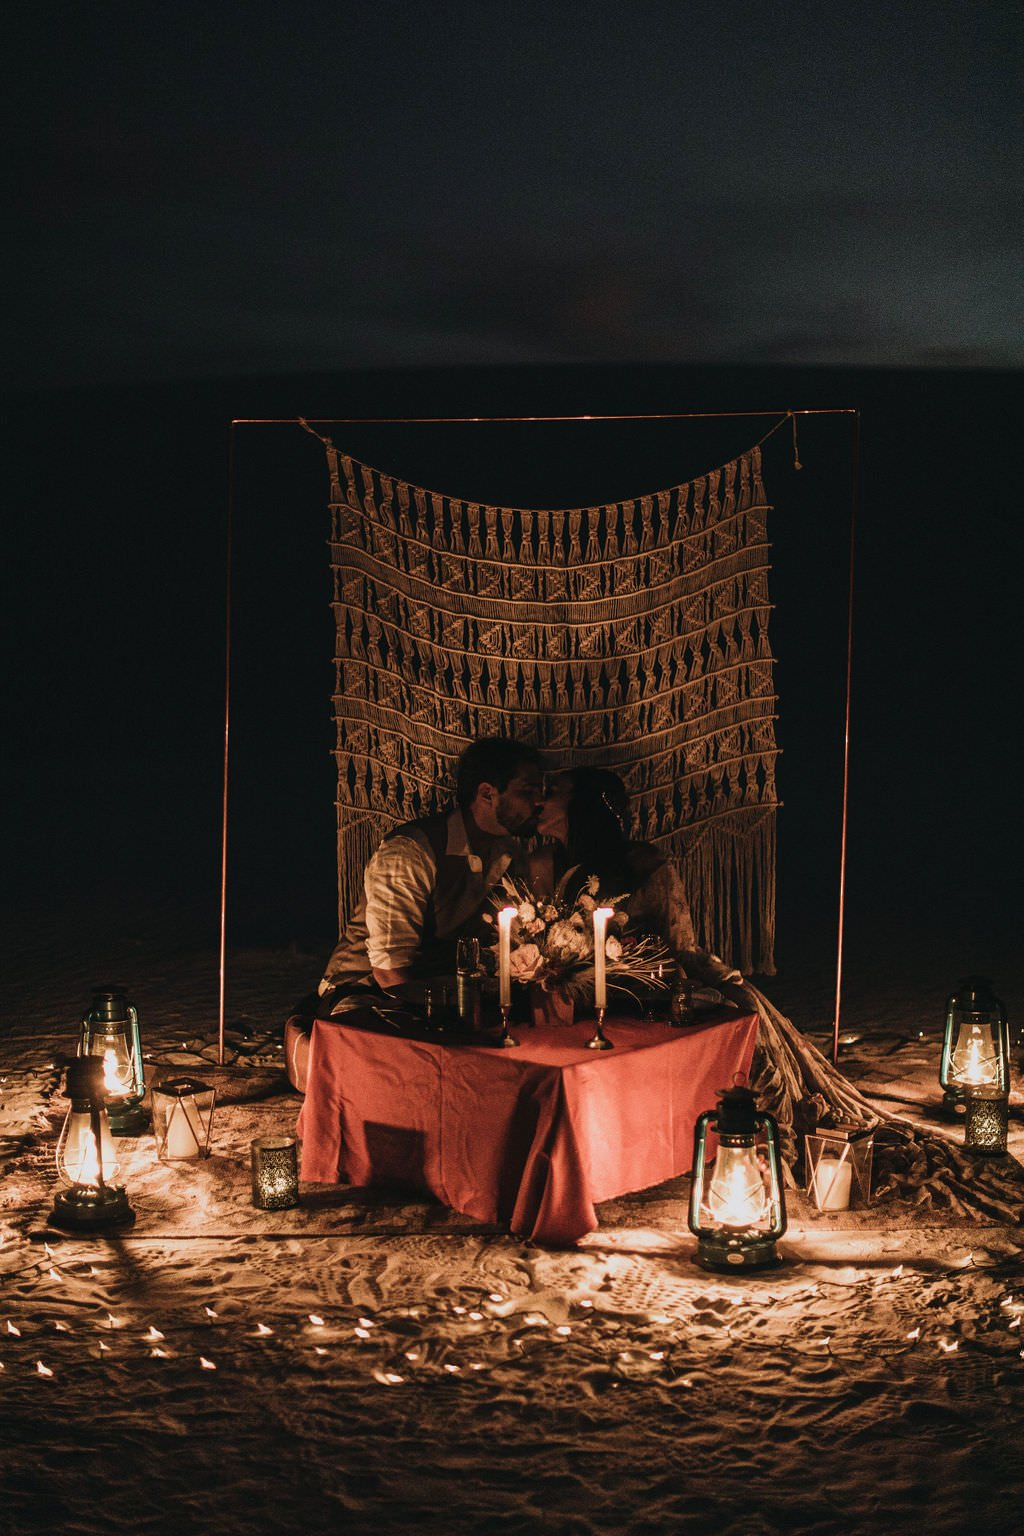 nighttime desert elopement